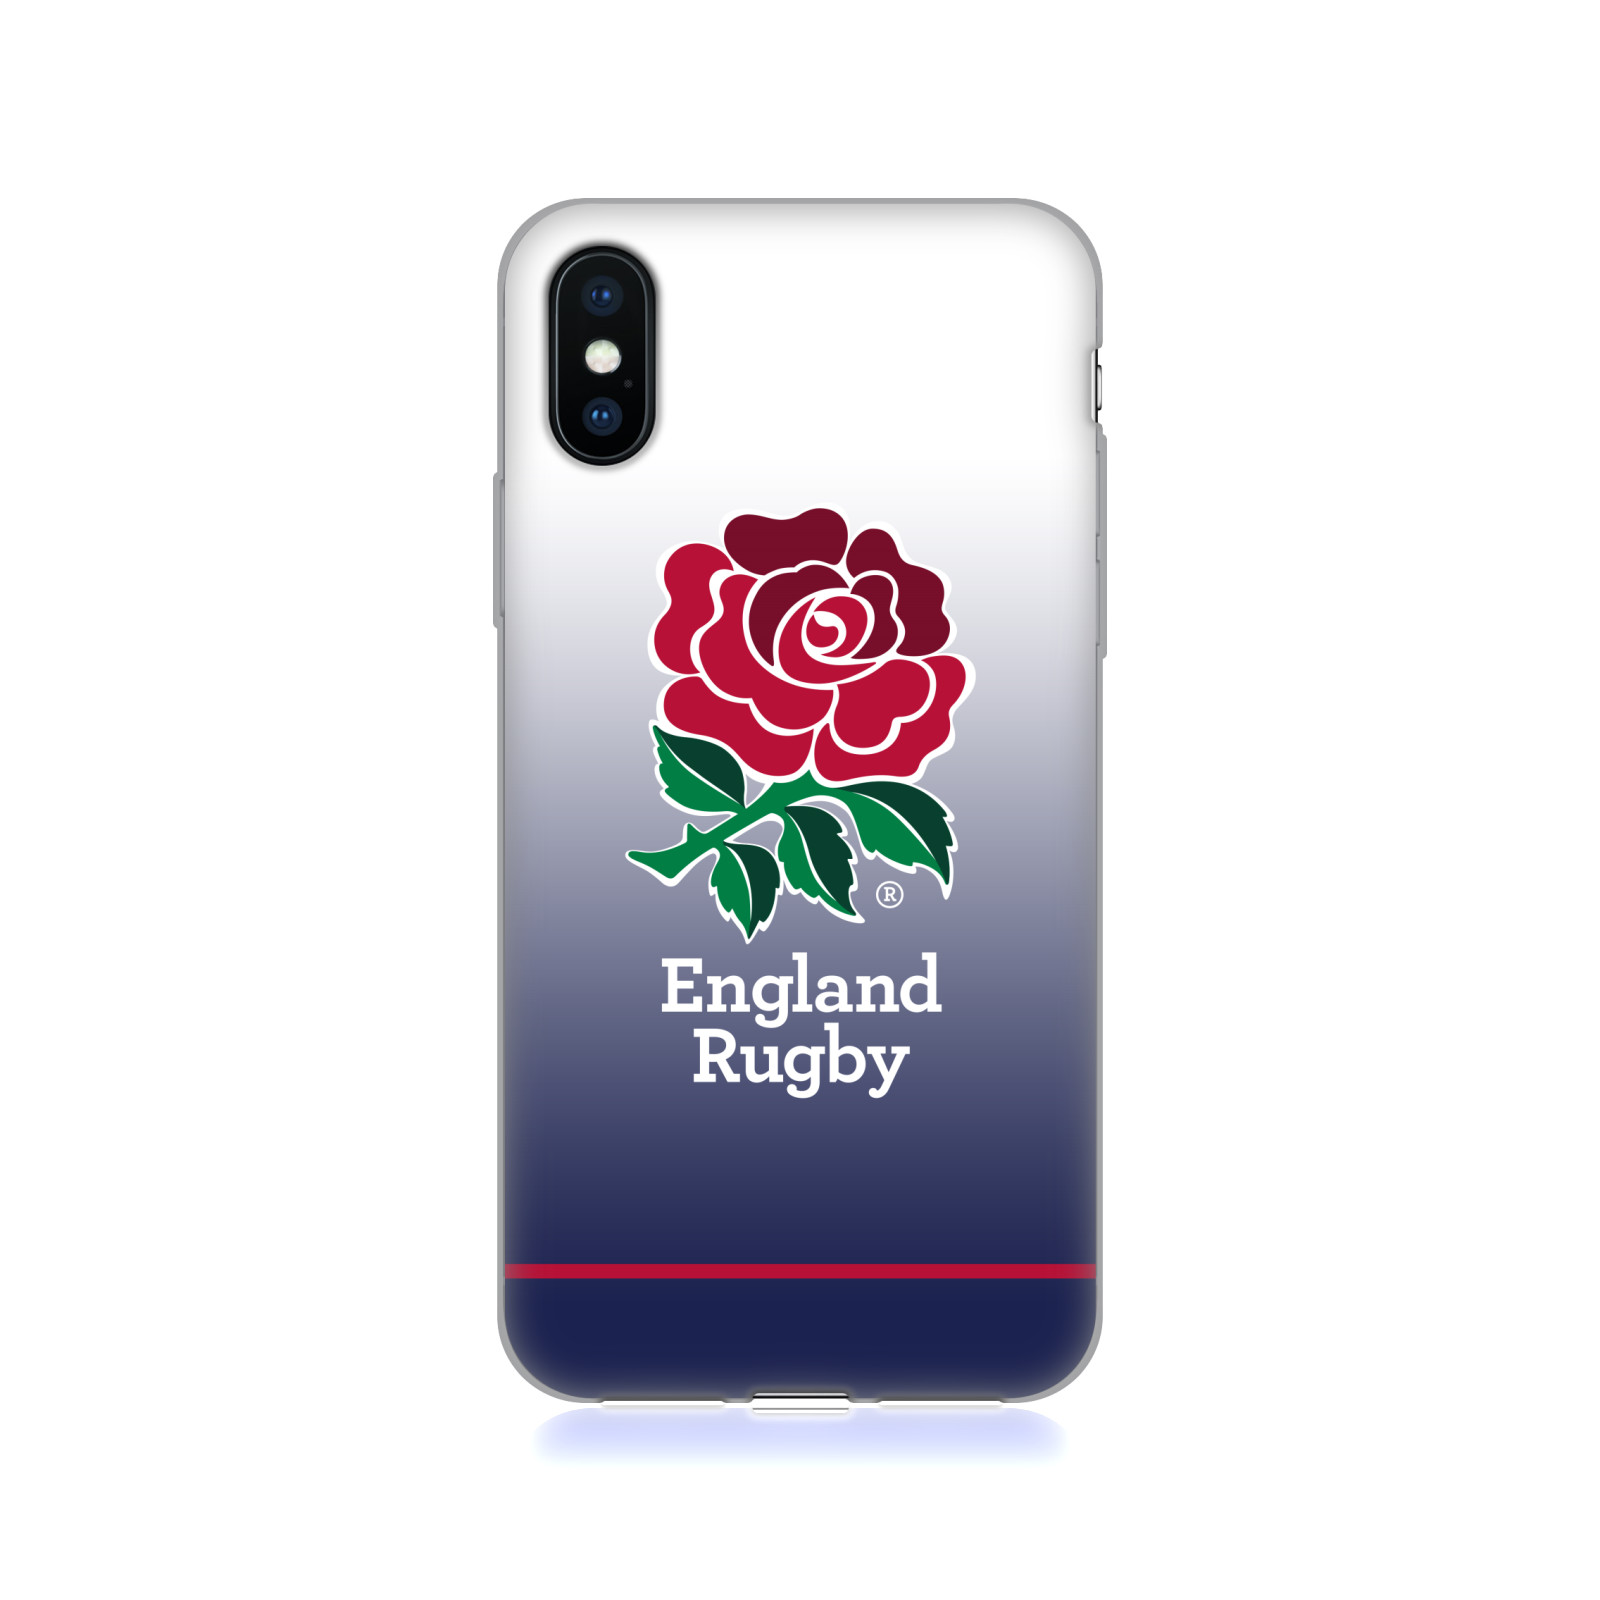 England Rugby Union <!--translate-lineup-->2017/18 Kit<!--translate-lineup-->